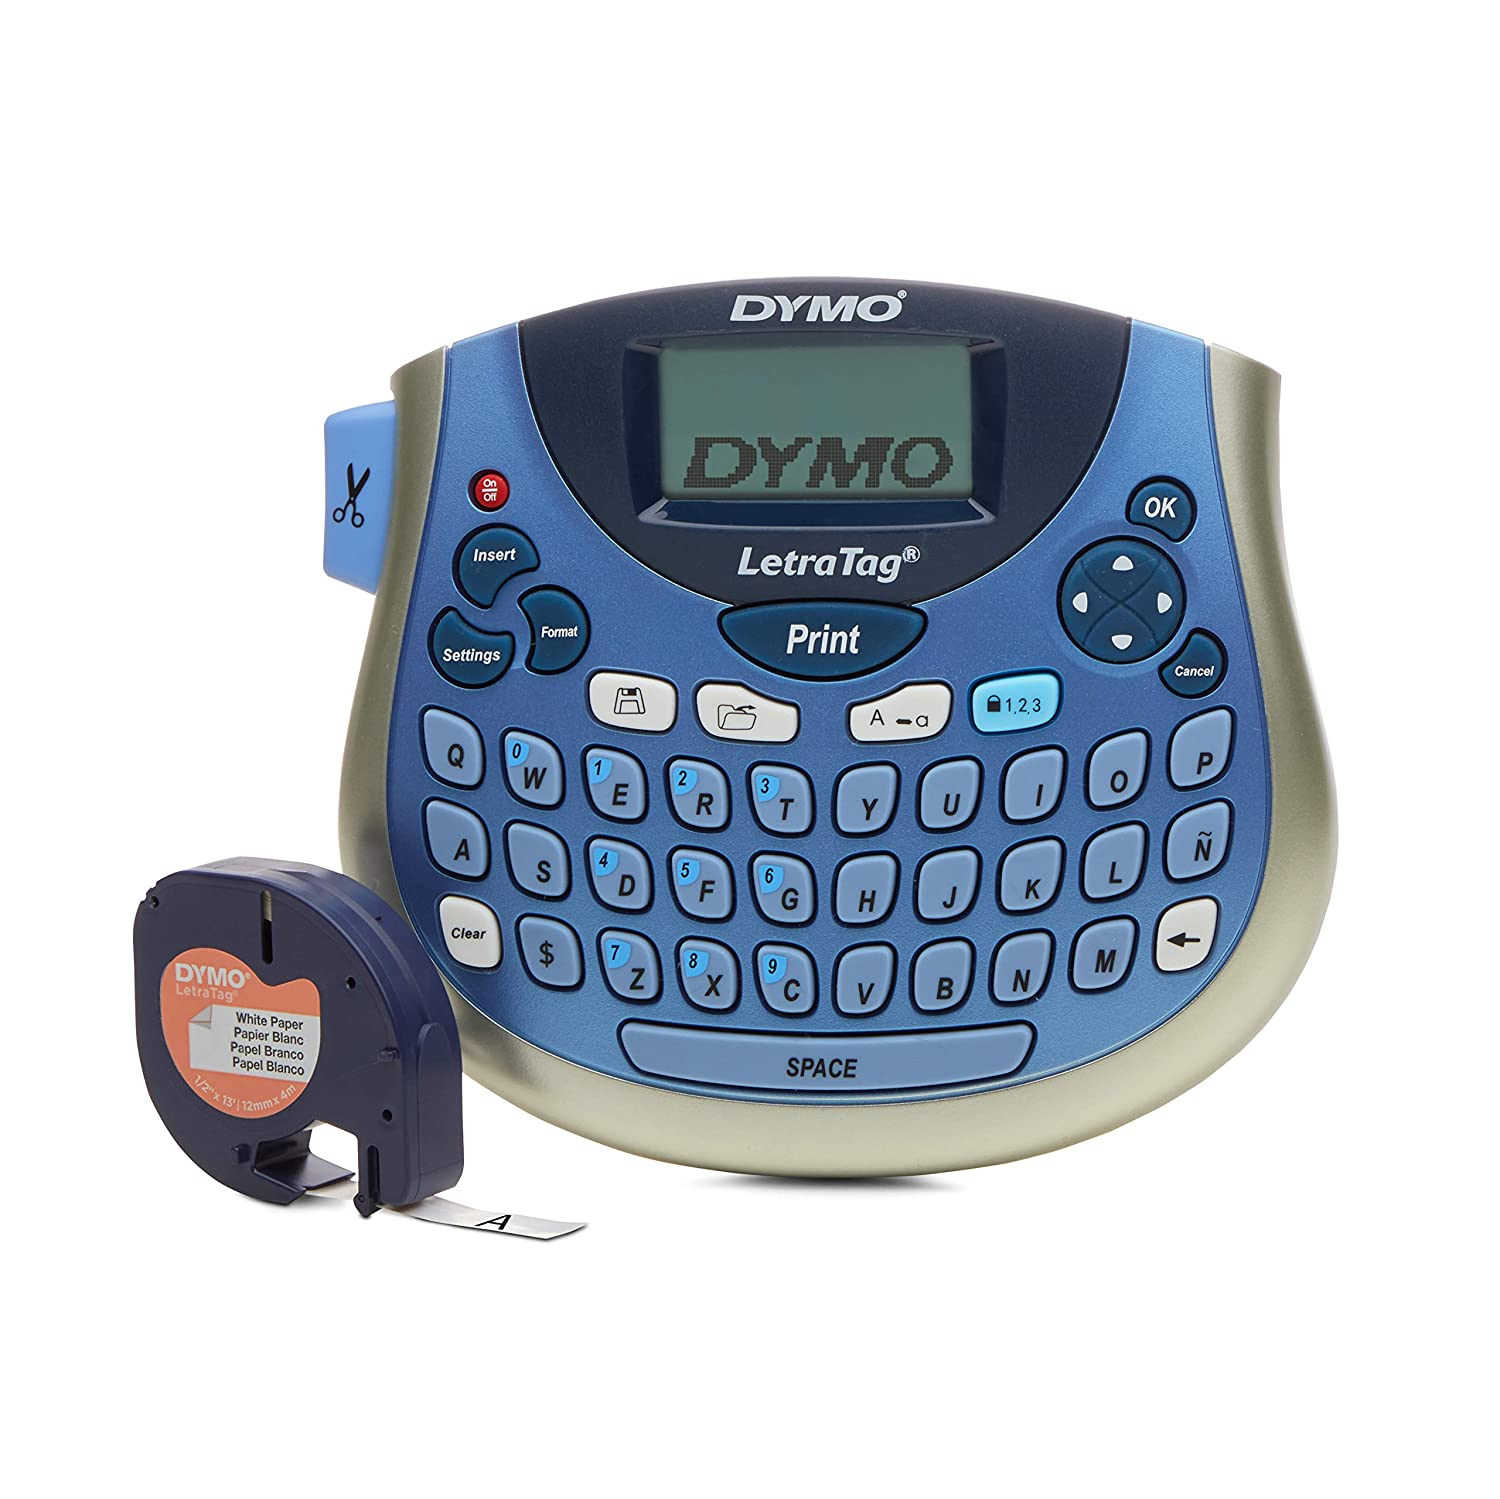 DYMO LetraTag LT-100T Compact, Portable Label Maker with QWERTY keyboard (1733011)